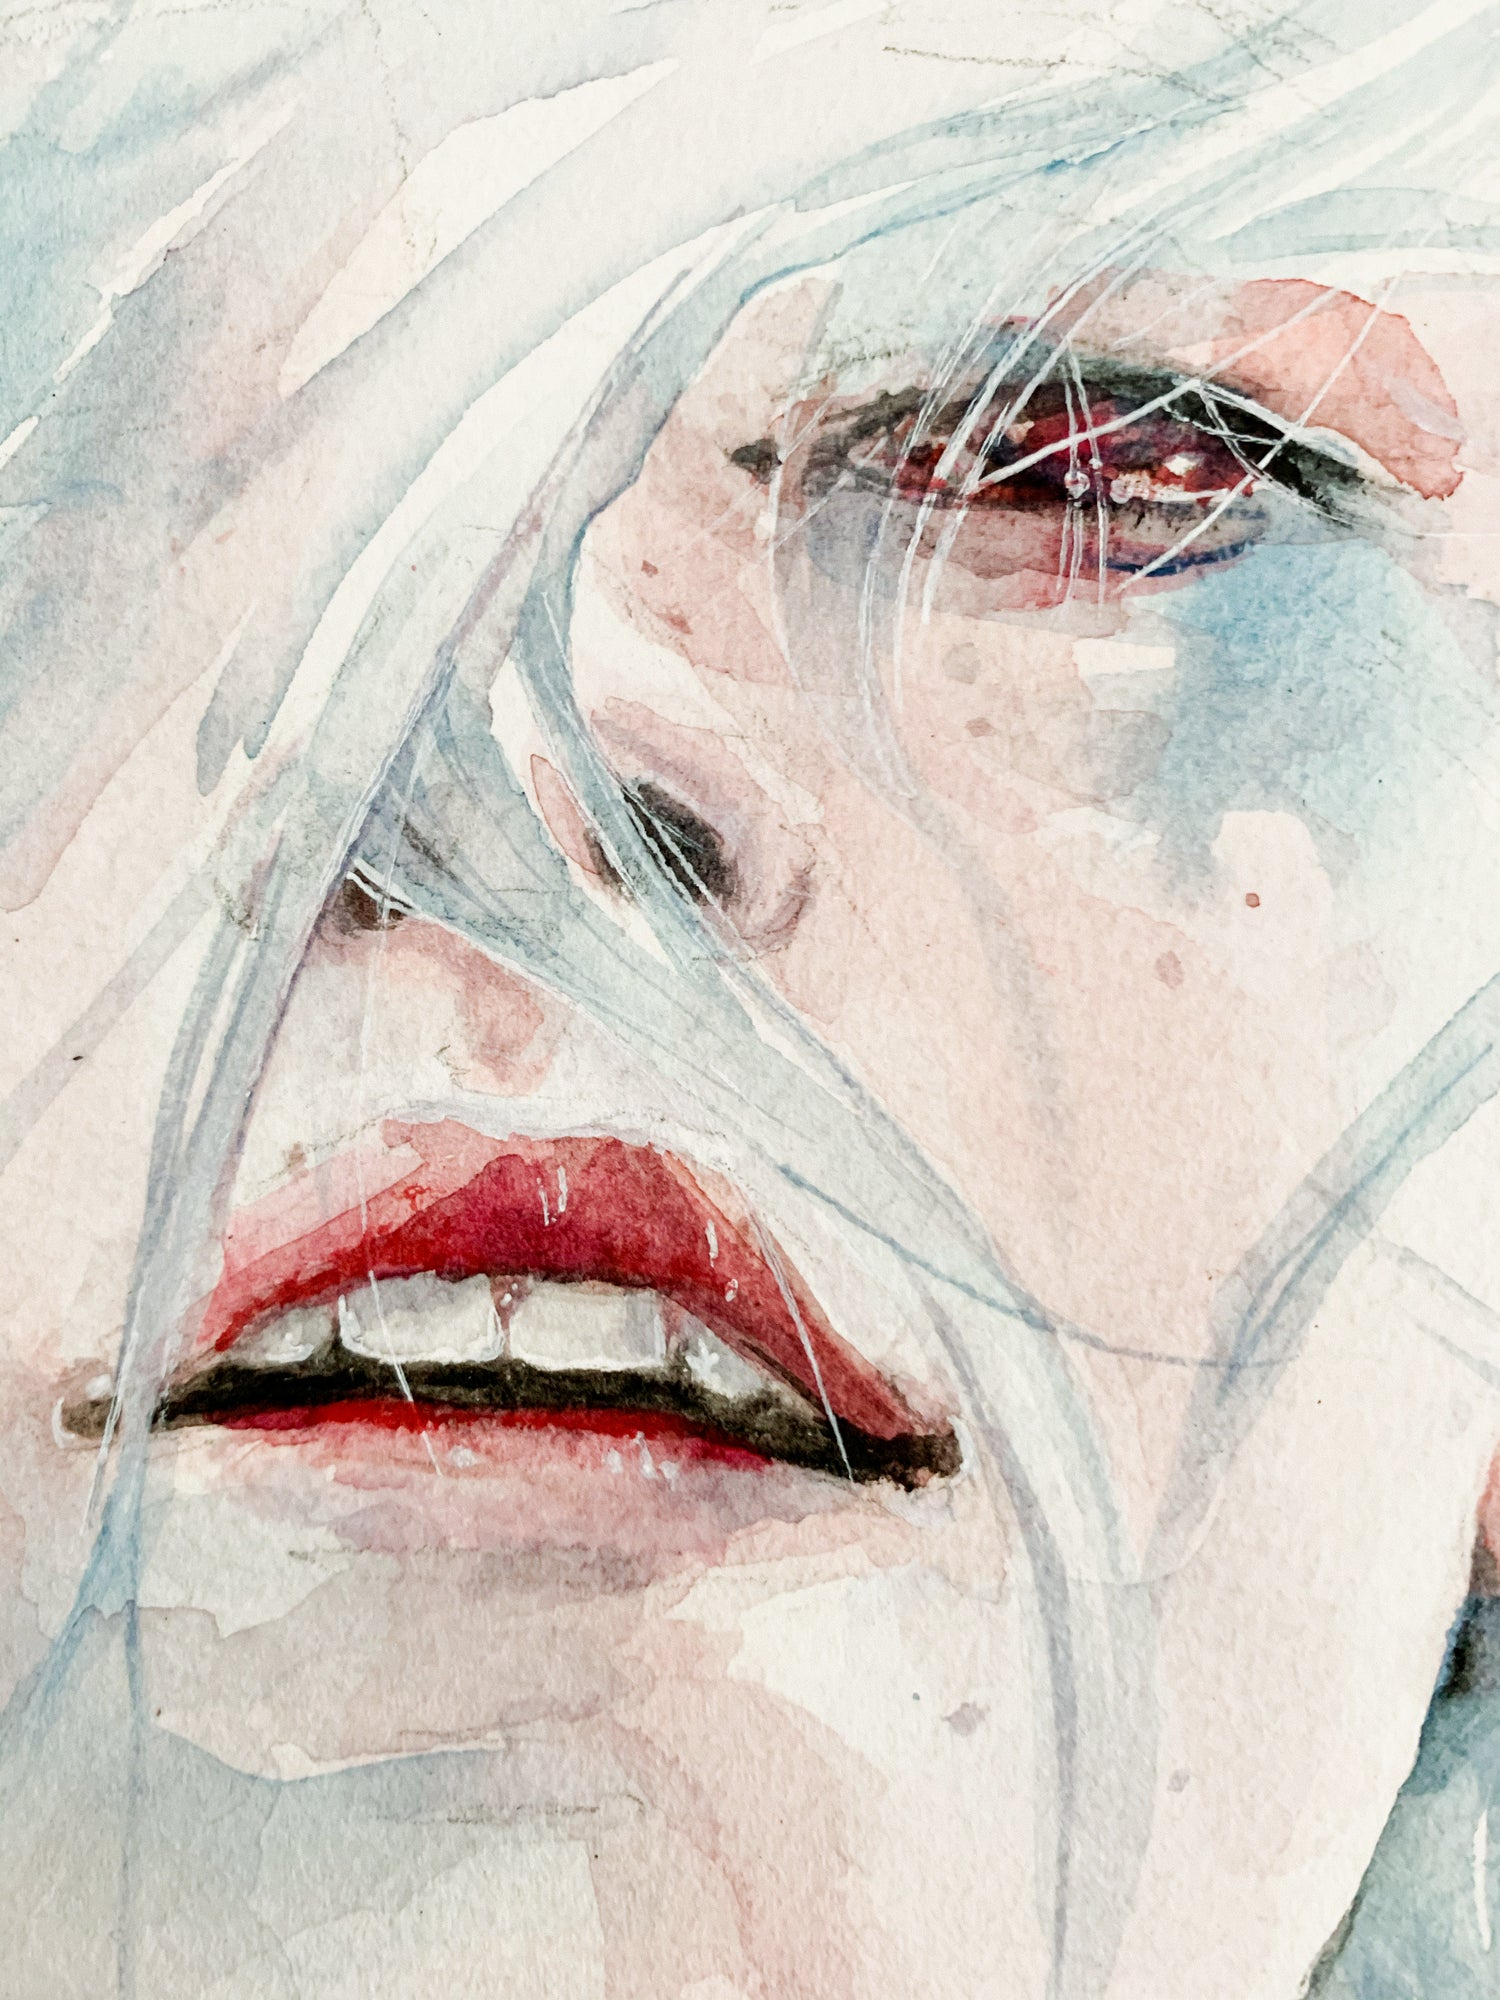 Agnes-Cecile ghosts in my mind